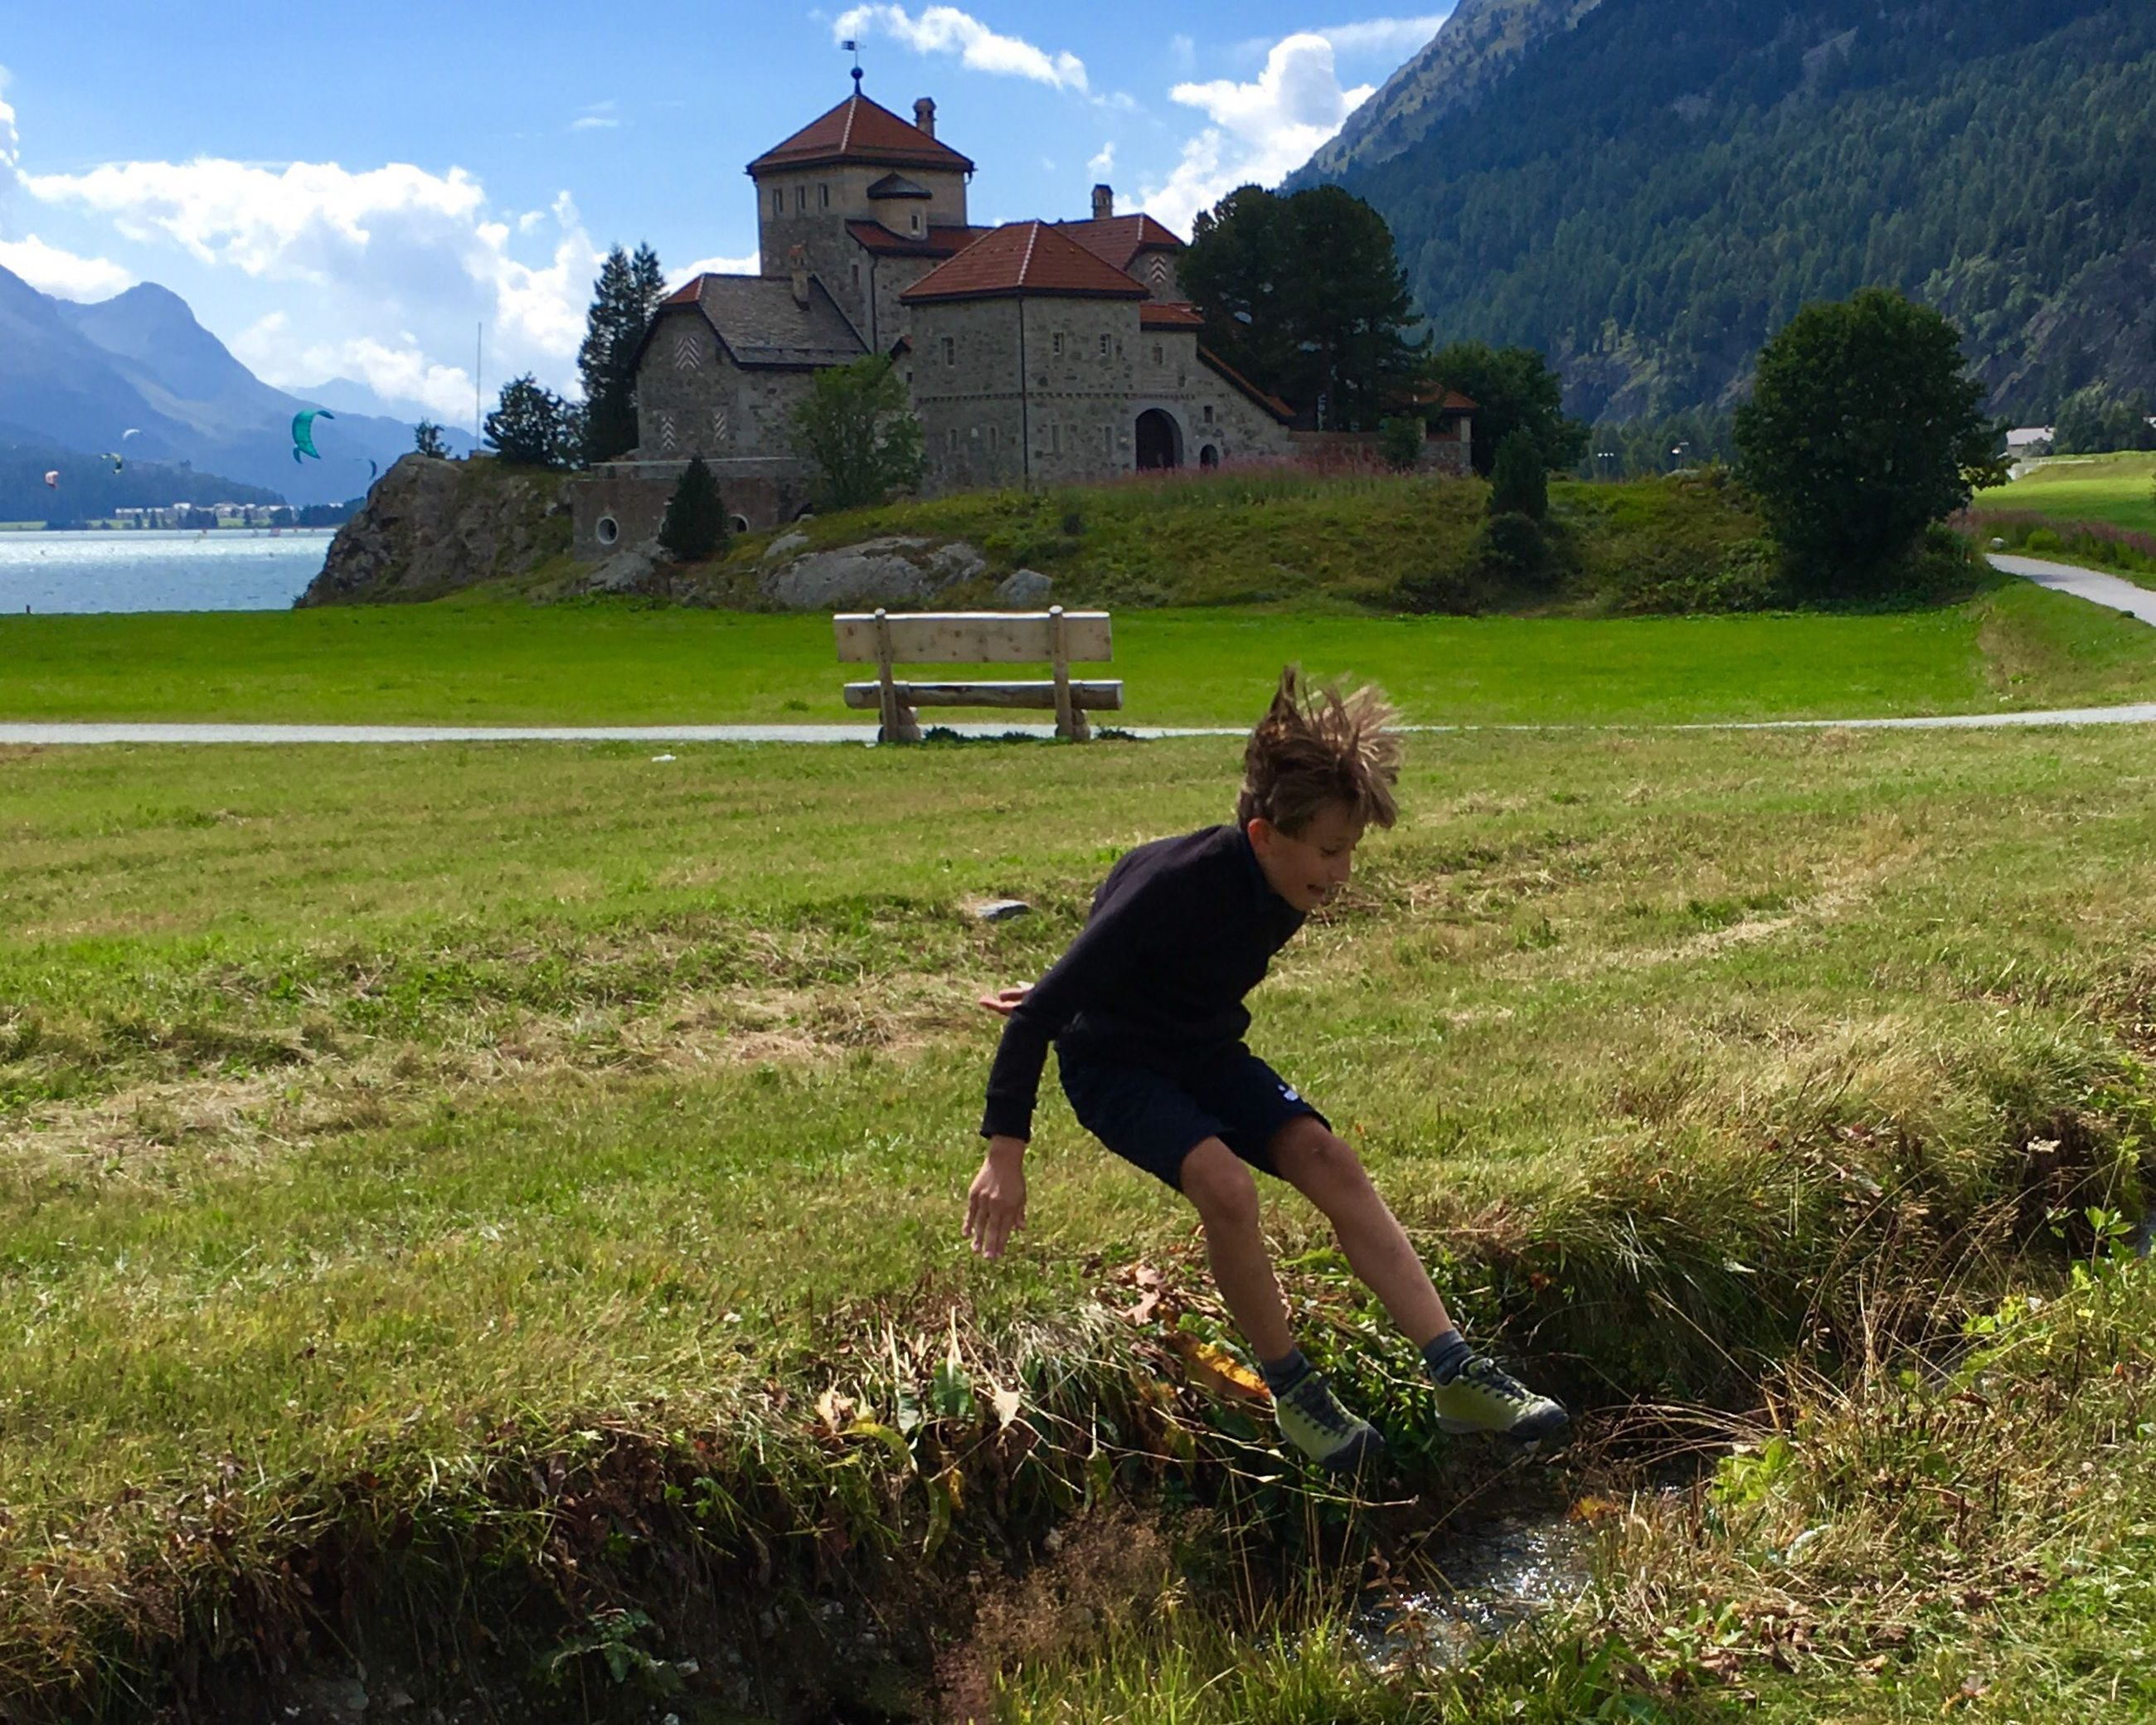 child, grass, childhood, plant, real people, land, building exterior, one person, architecture, nature, field, built structure, boys, day, full length, males, lifestyles, casual clothing, leisure activity, outdoors, innocence